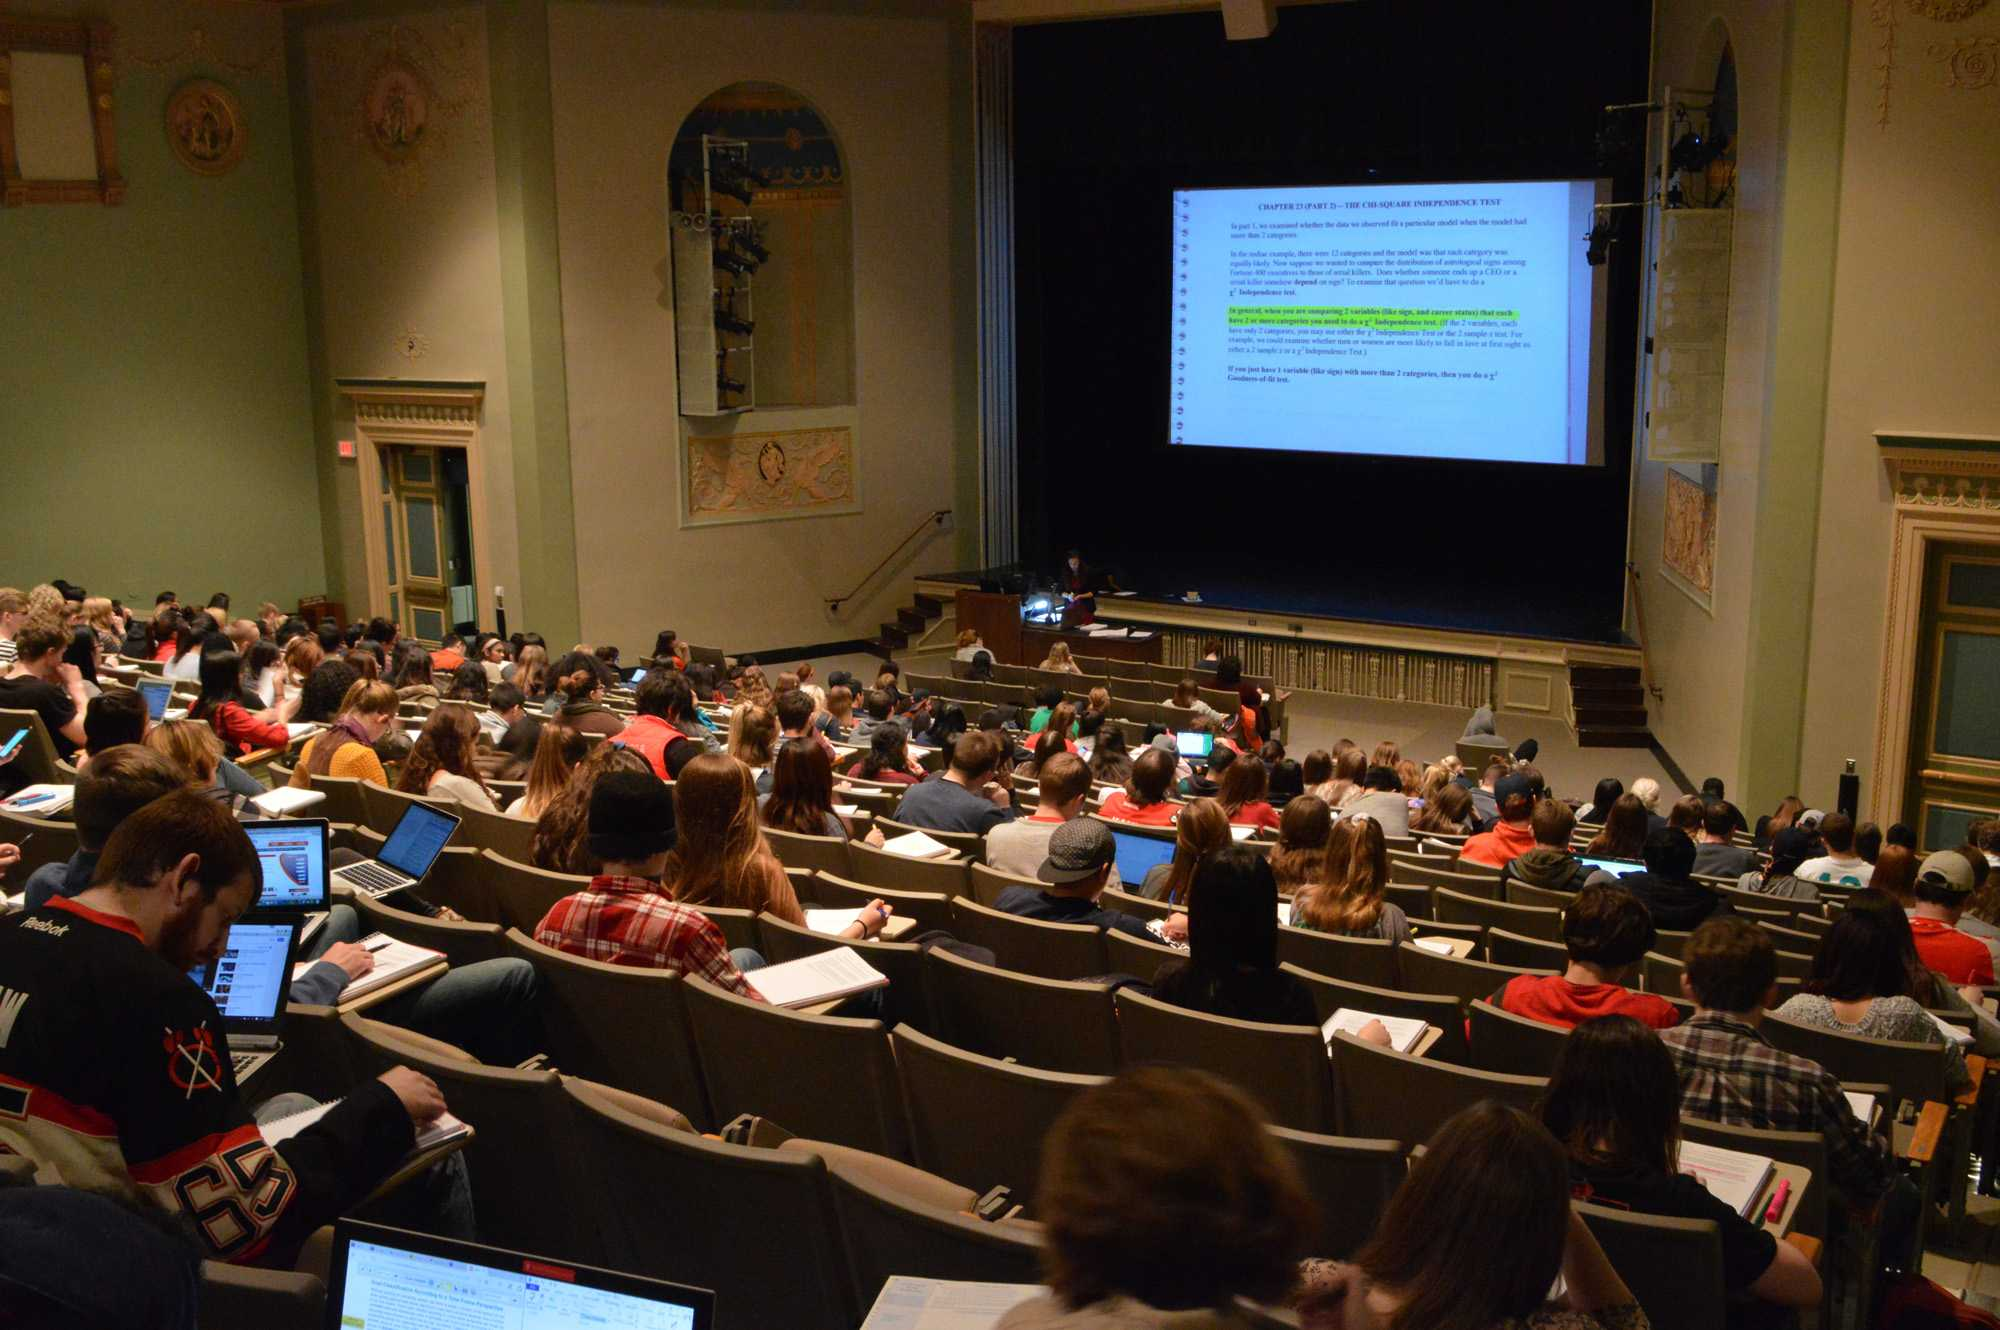 Statistics 100 students listen to newly hired instructor, Karle Laska, speak about the final few pages in the course manual on Dec 8, 2015.